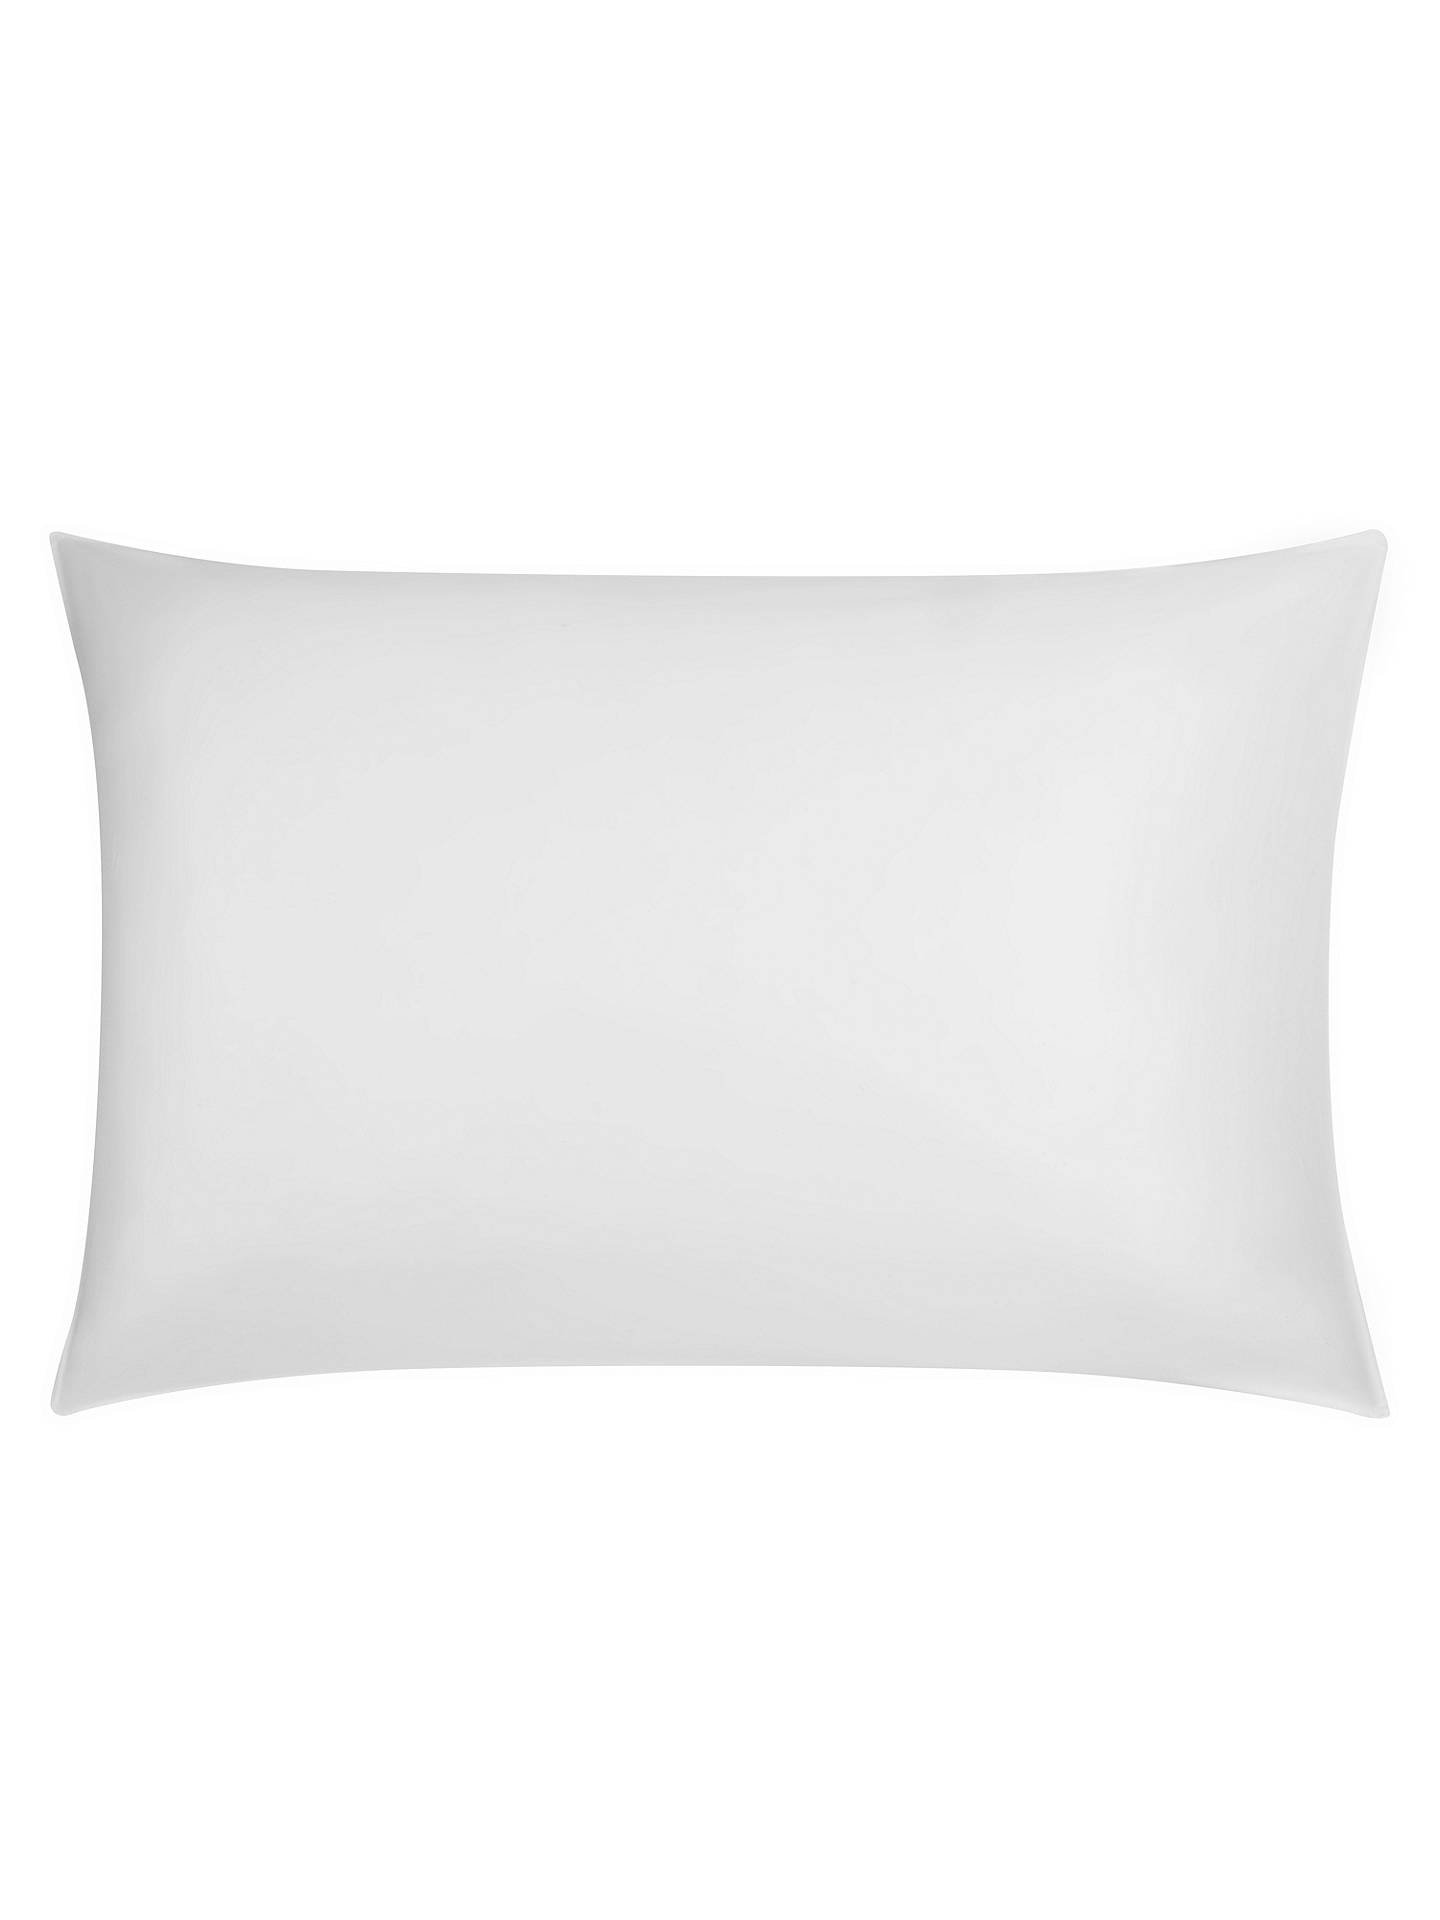 Buy John Lewis & Partners 400 Thread Count Soft & Silky Egyptian Cotton Pillowcase, White, Standard Online at johnlewis.com